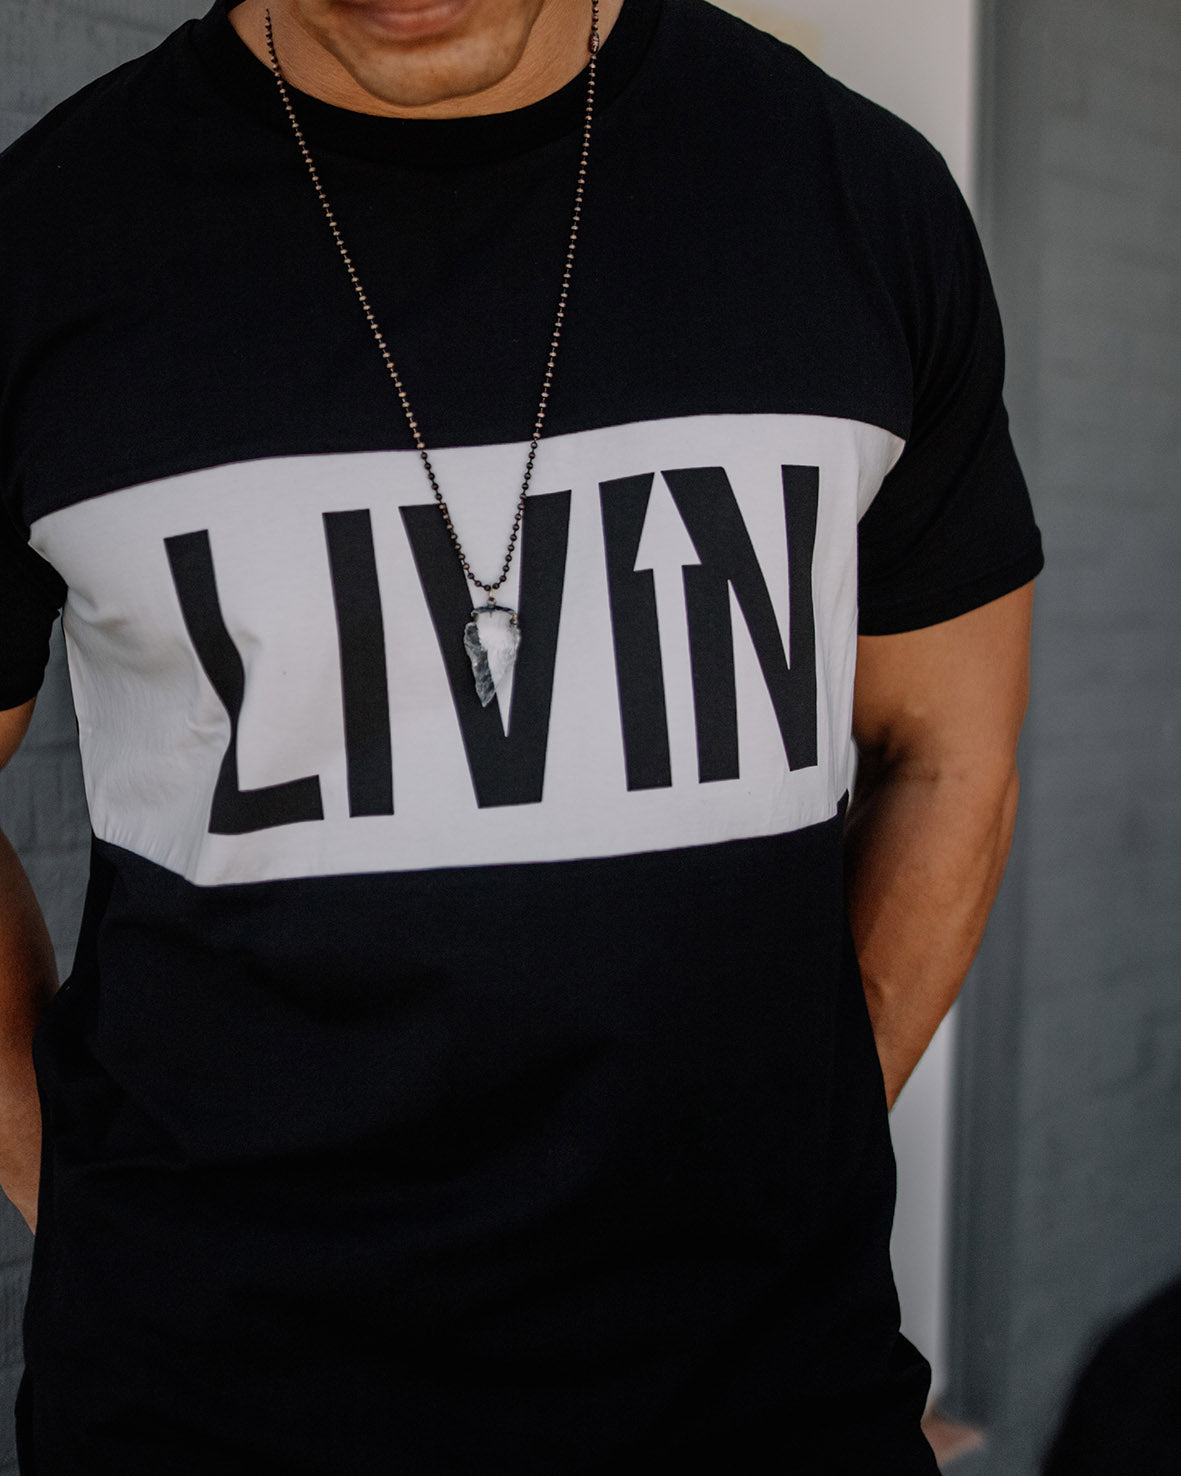 Statement Tee by LIVIN